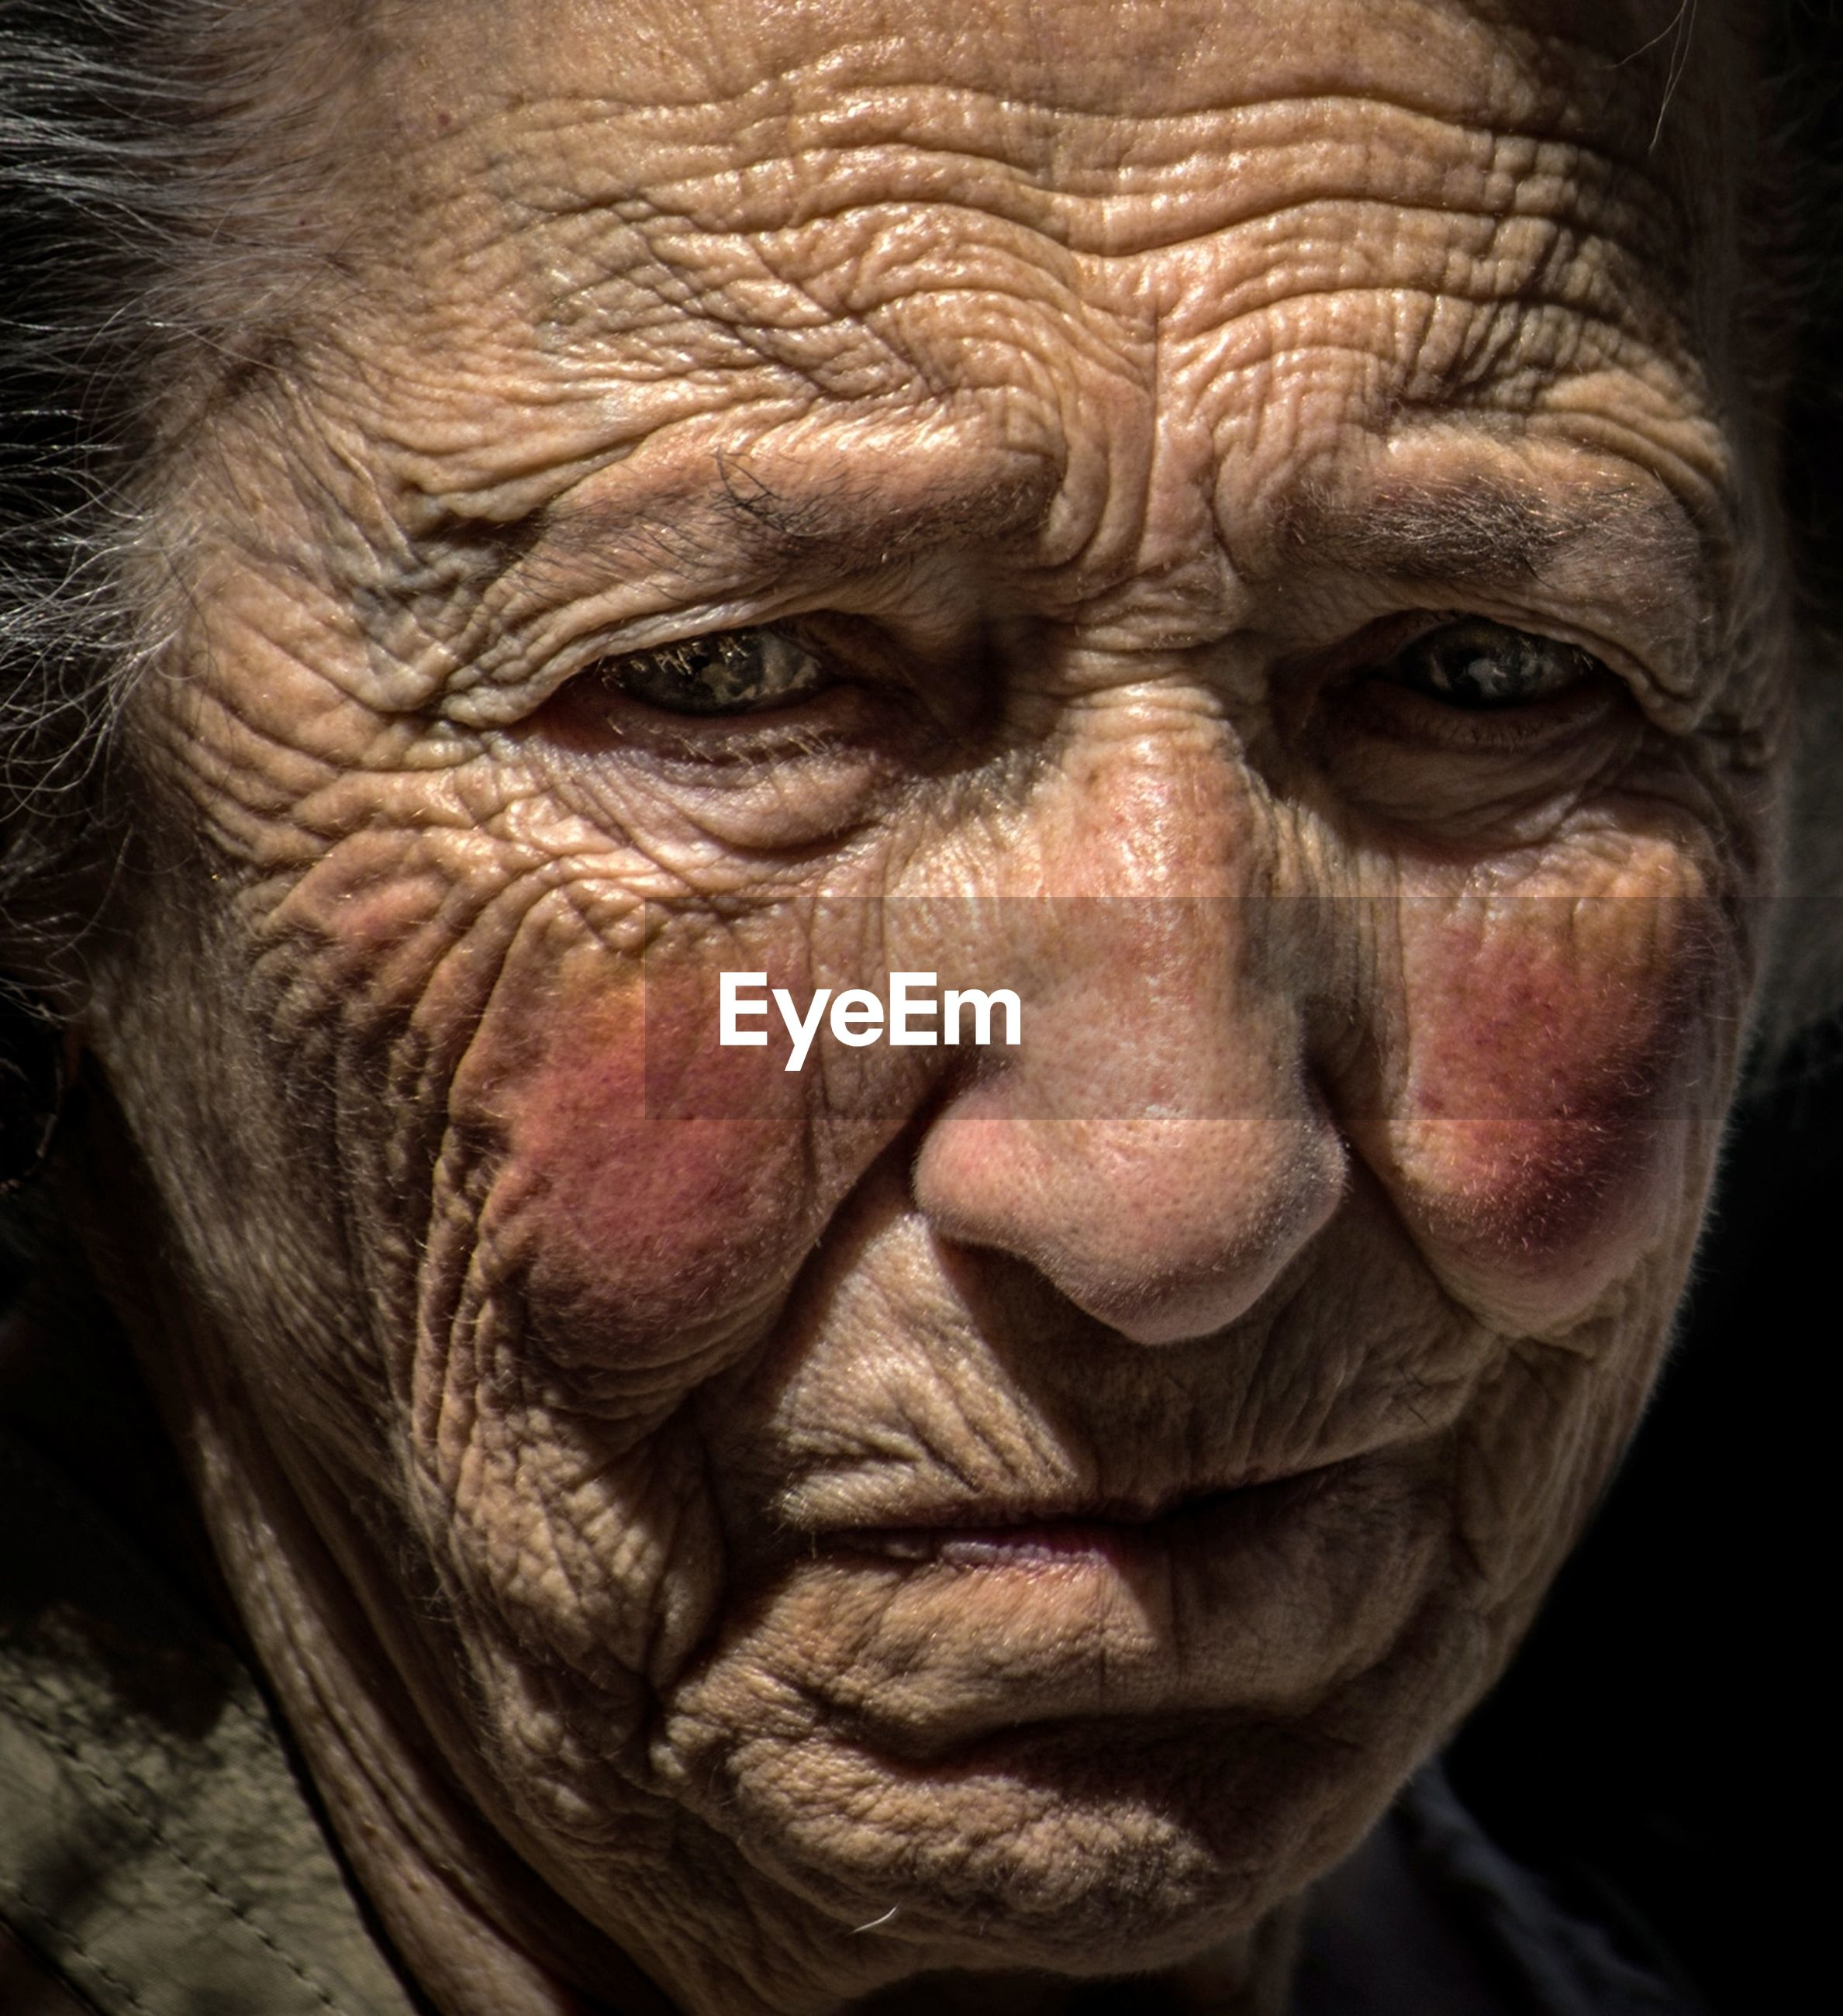 senior adult, wrinkled, close-up, adult, human face, human body part, body part, portrait, people, emotion, senior men, wisdom, looking, headshot, real people, facial expression